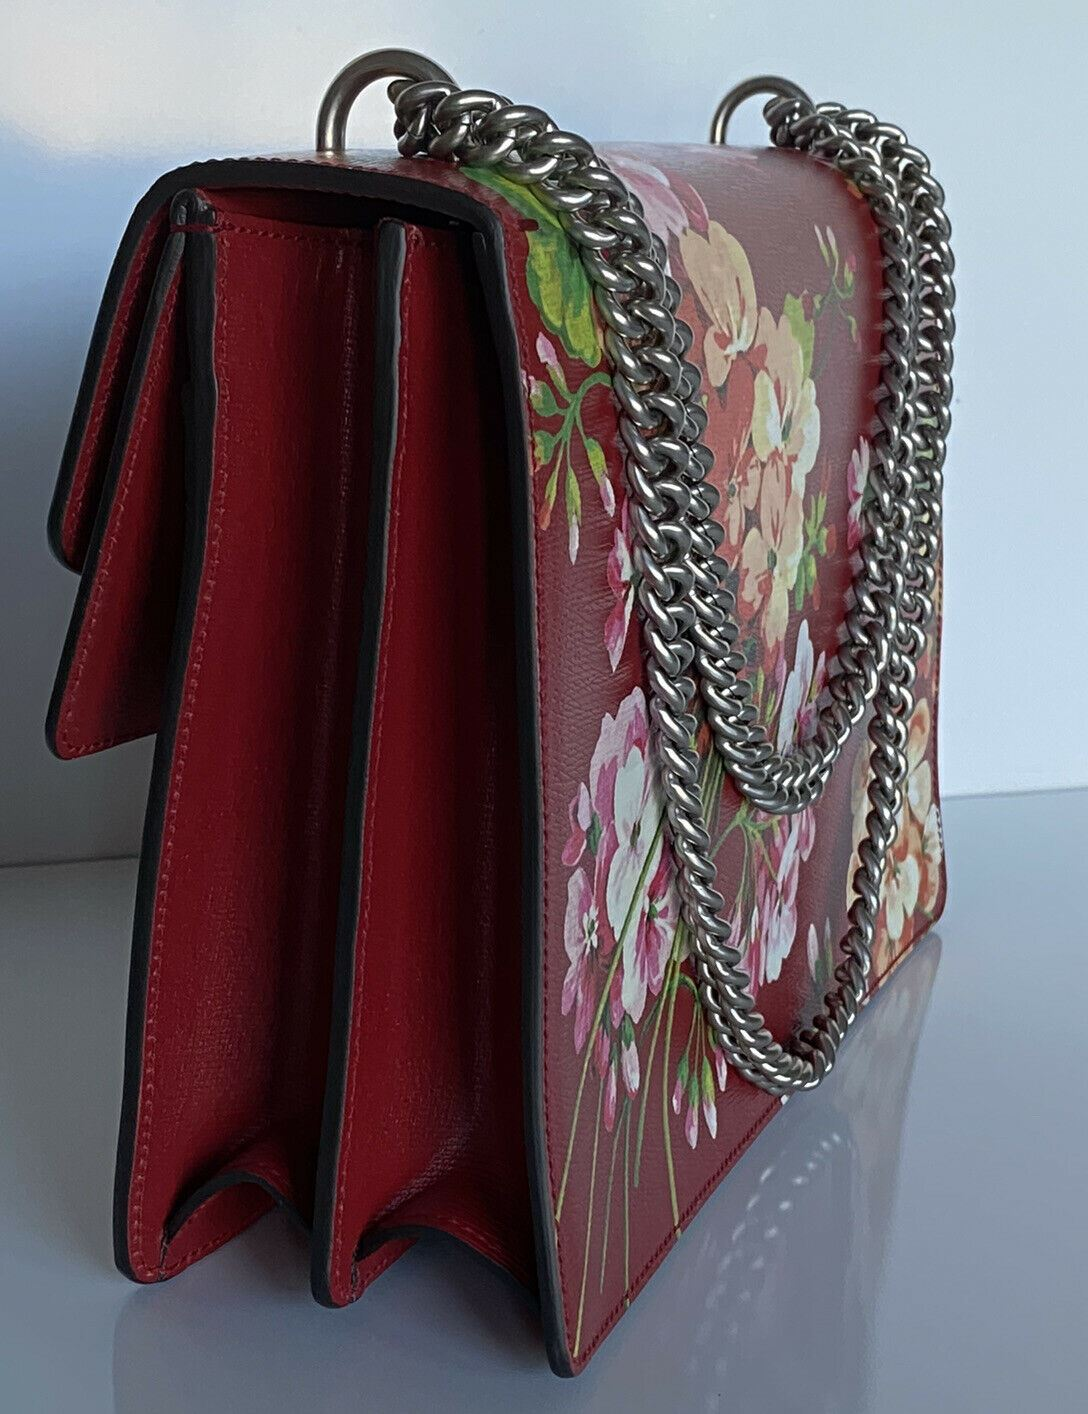 New Authentic Gucci Dionysus Shoulder Hand Bag Blooms Purse Medium Red Italy